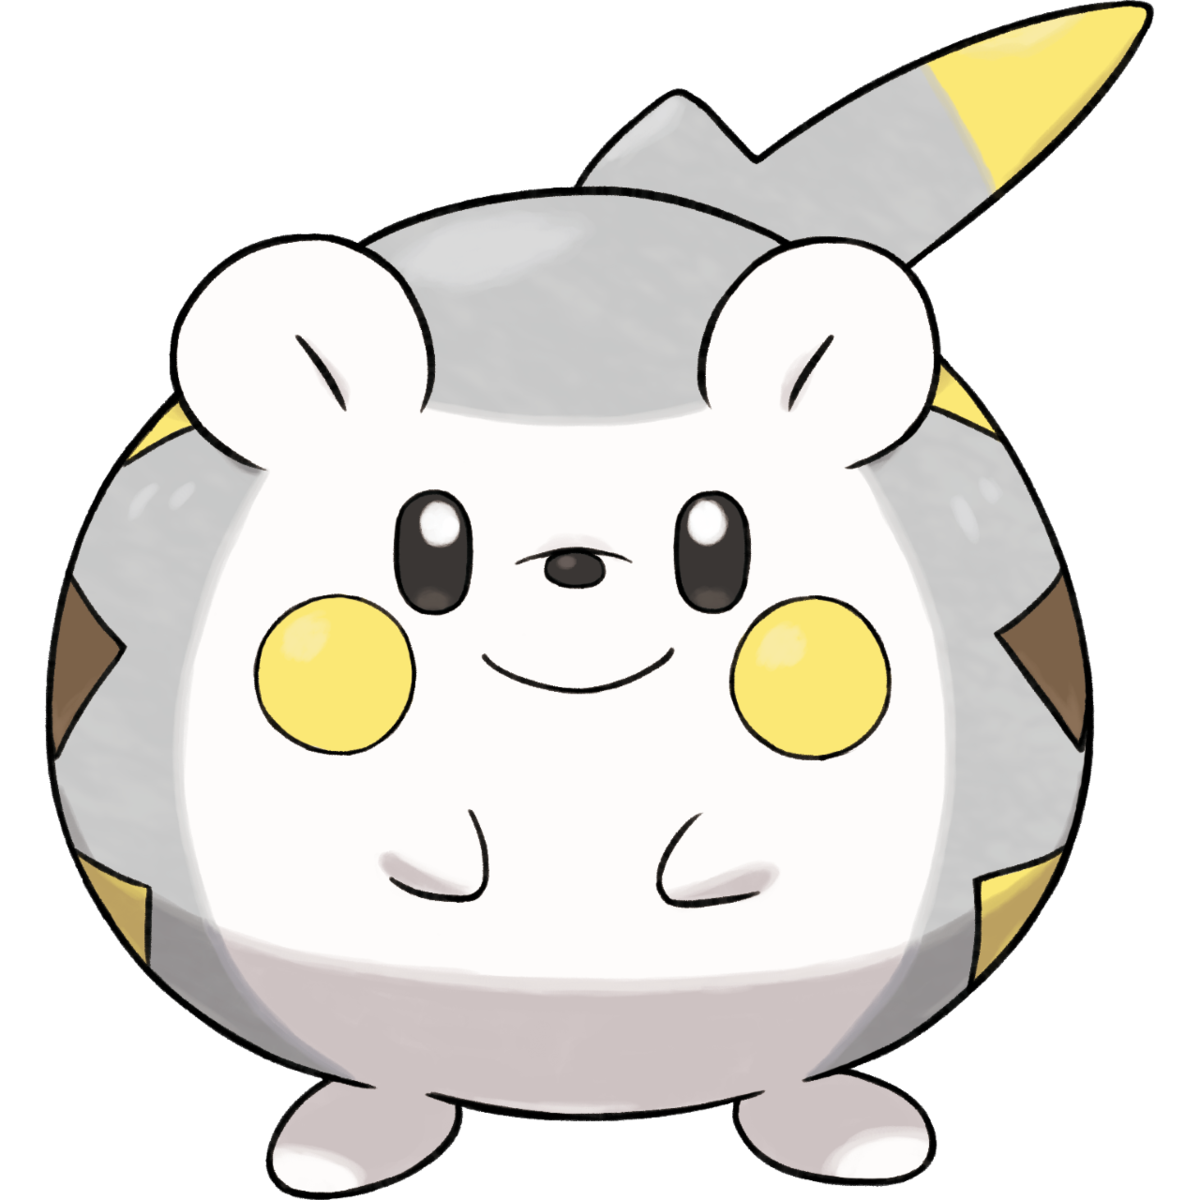 Team up electric pokemon clipart png free library Togedemaru (Pokémon) - Bulbapedia, the community-driven ... png free library